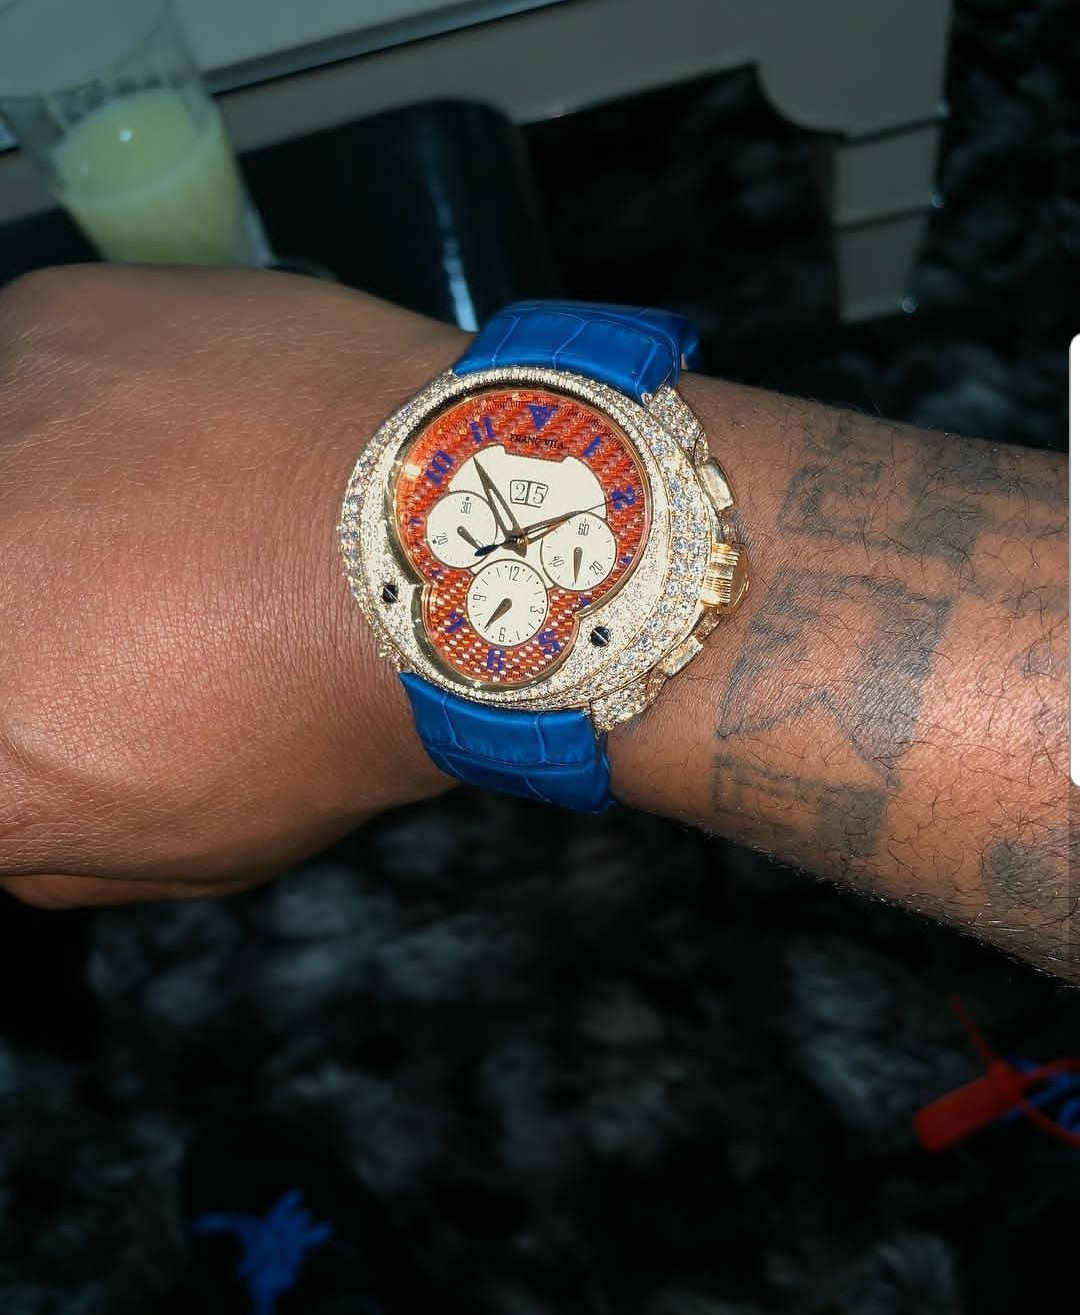 Davido shows off diamond encrusted wristwatch as he flies on a private jet with girlfriend Chio